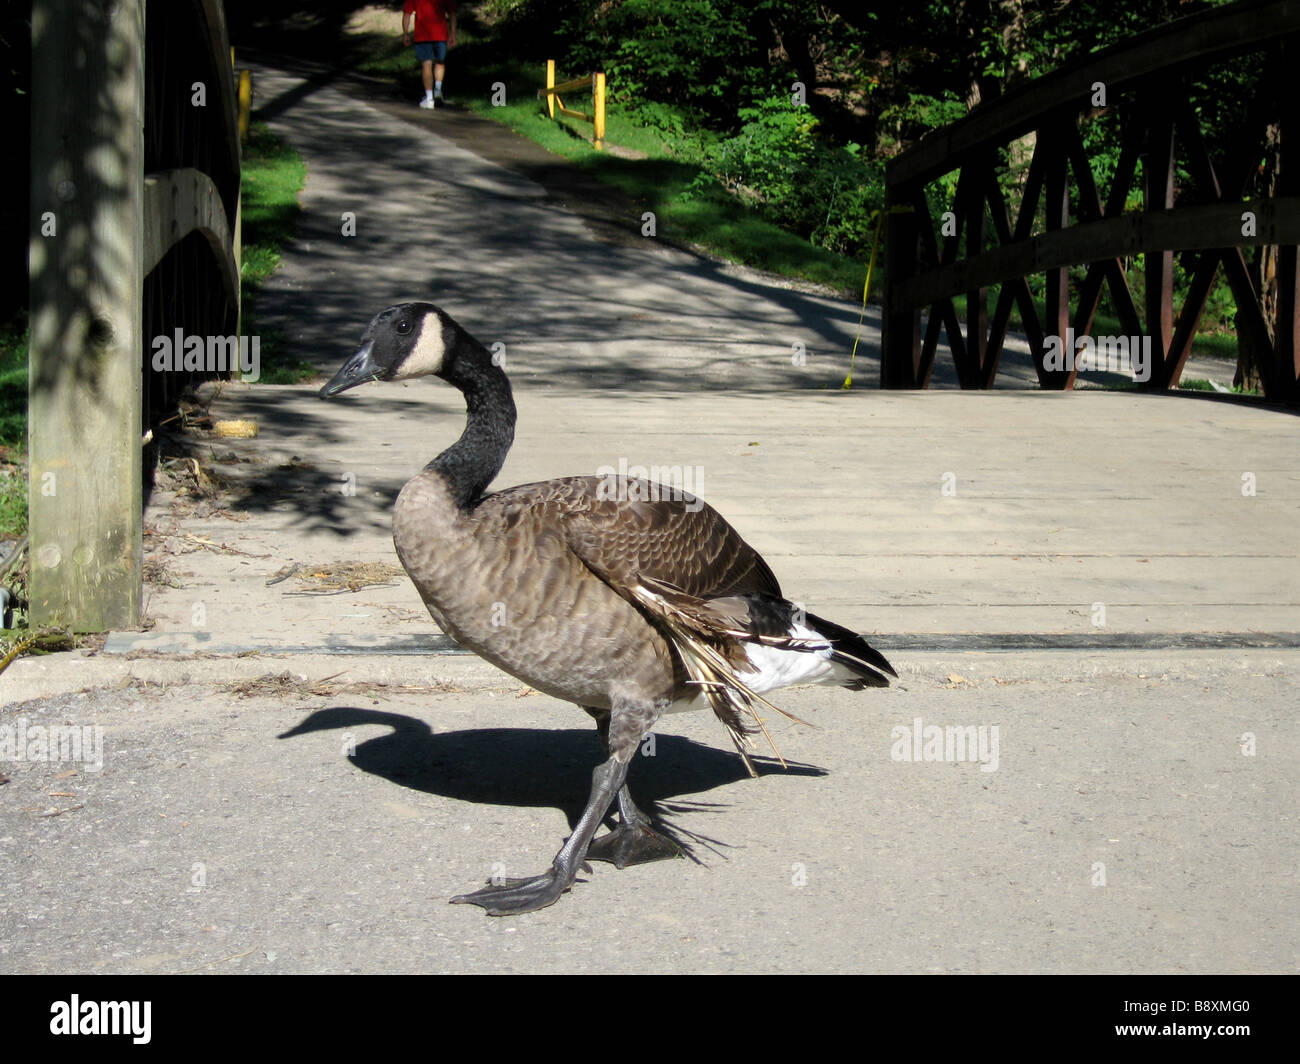 An injured Canada goose unable to fly because of a damaged wing walks around a public park searching for the rest - Stock Image